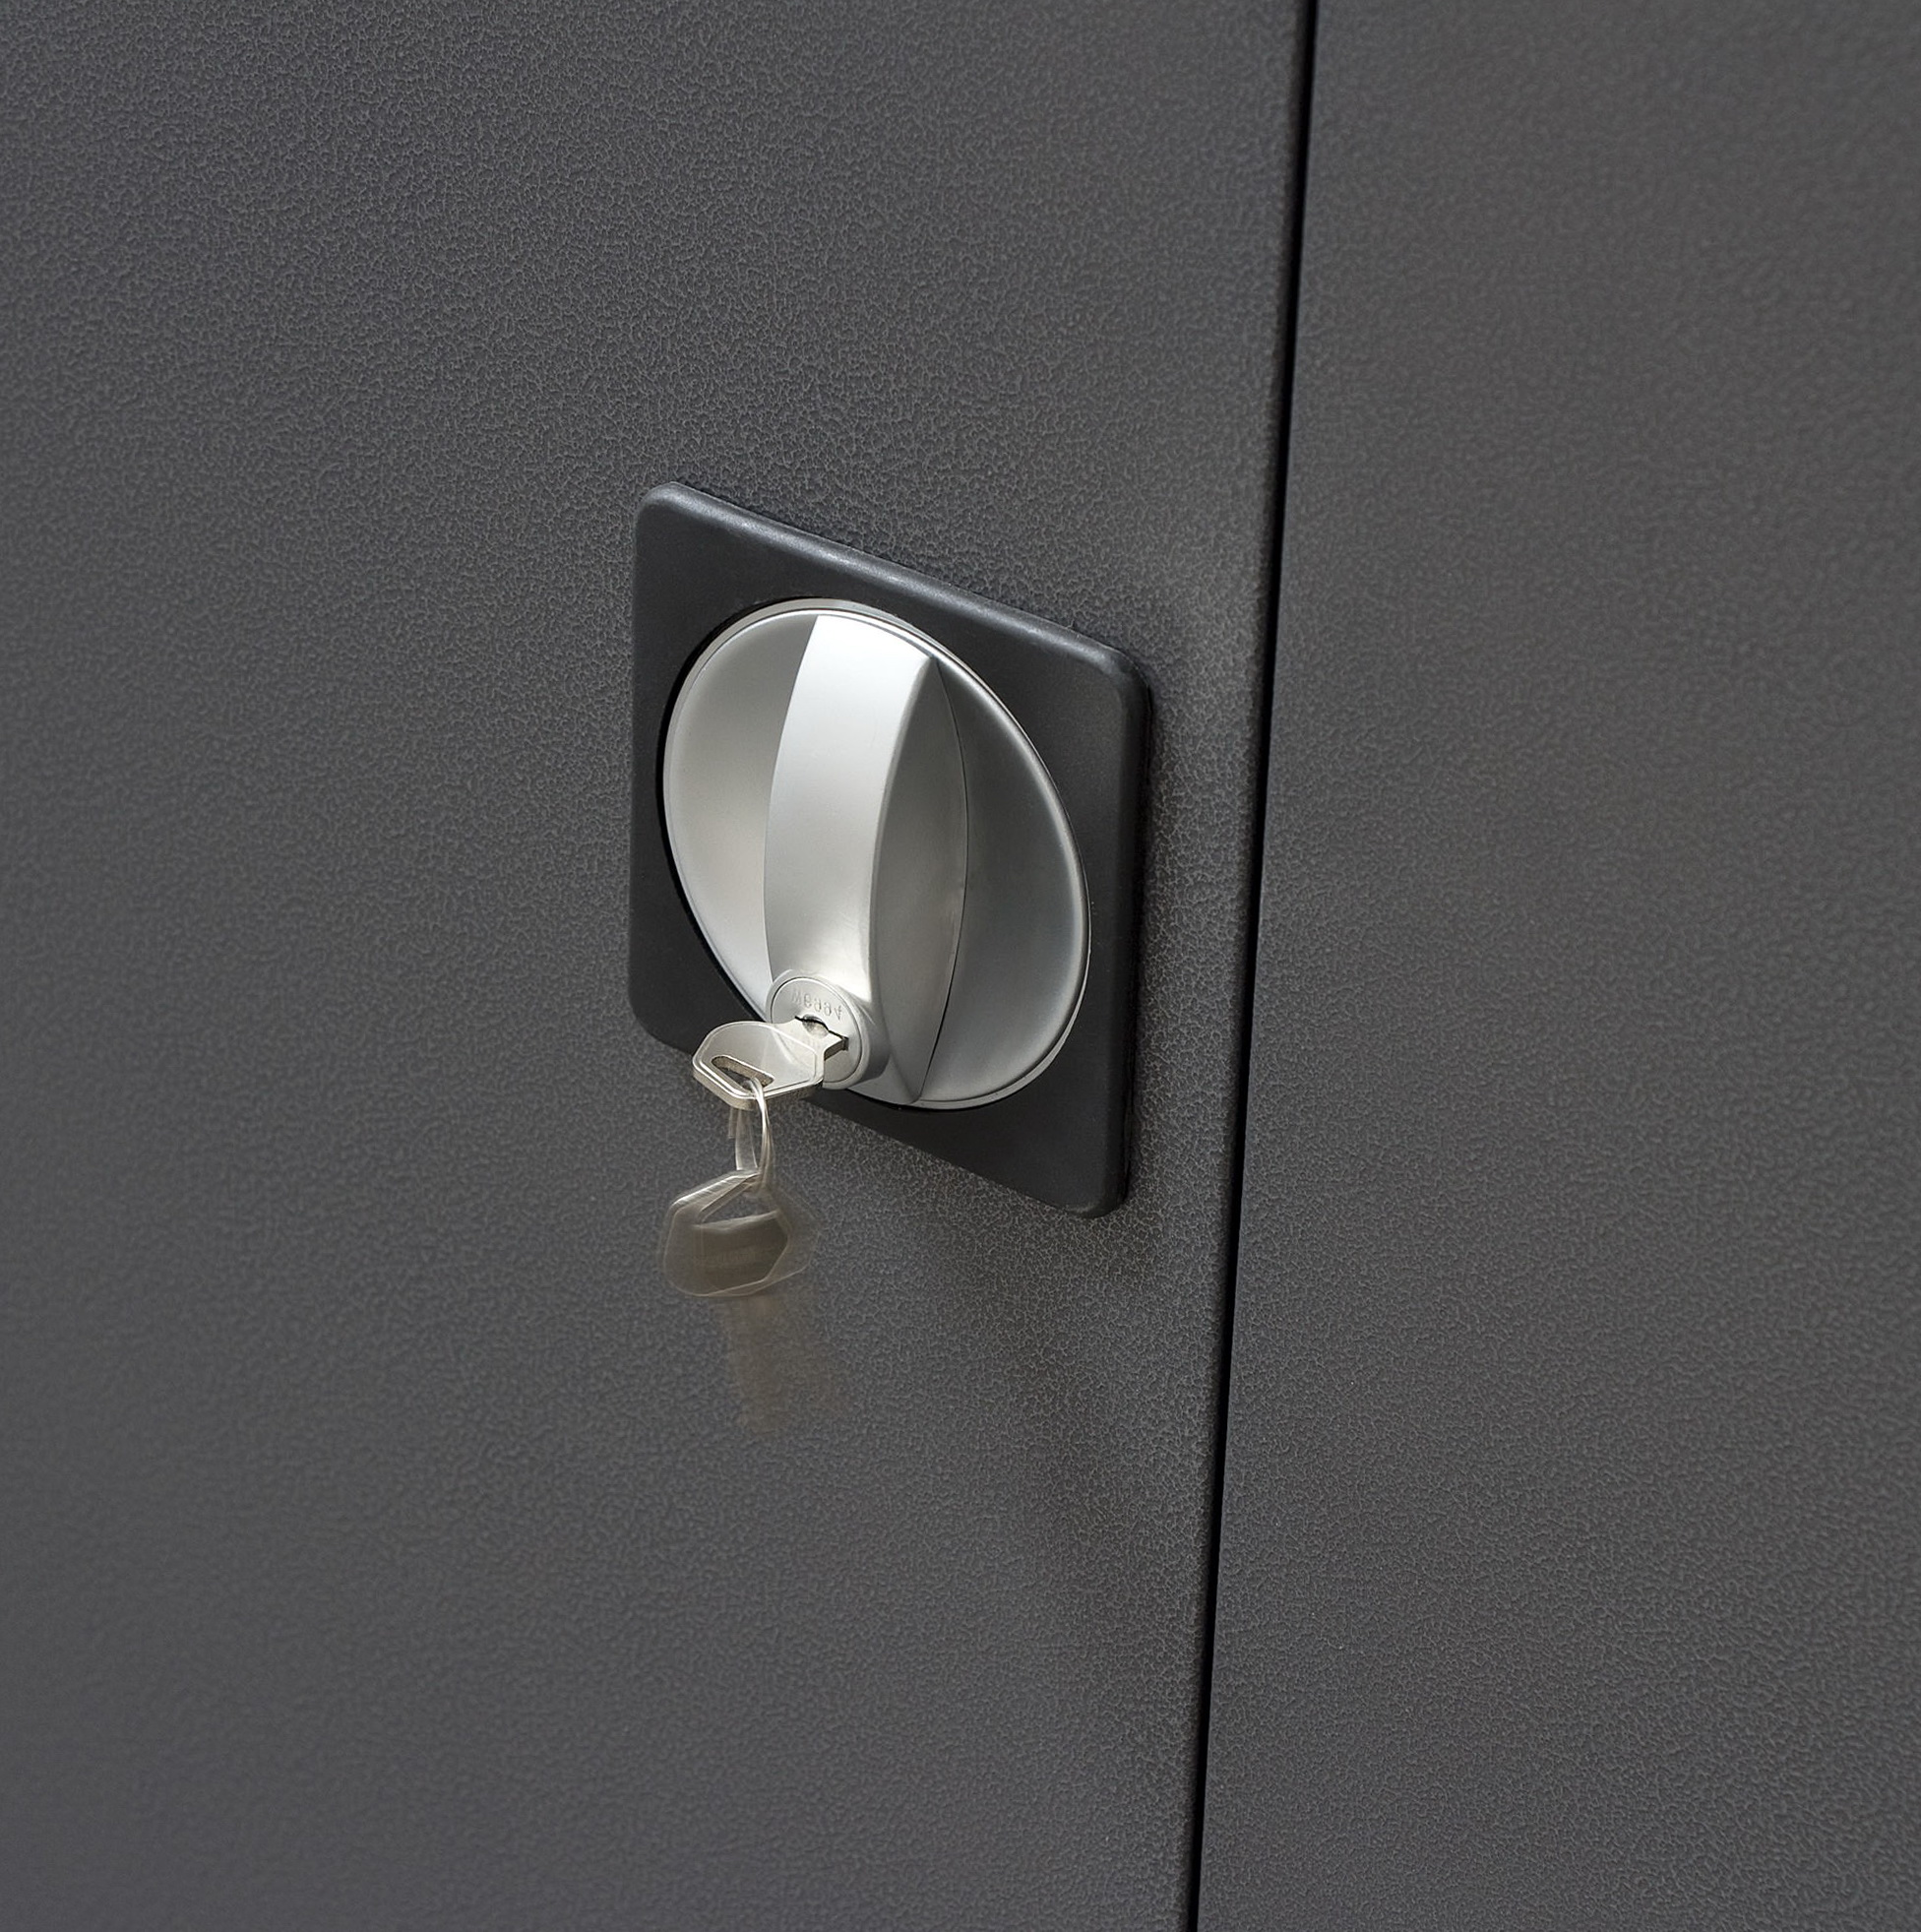 mirror closet door lock